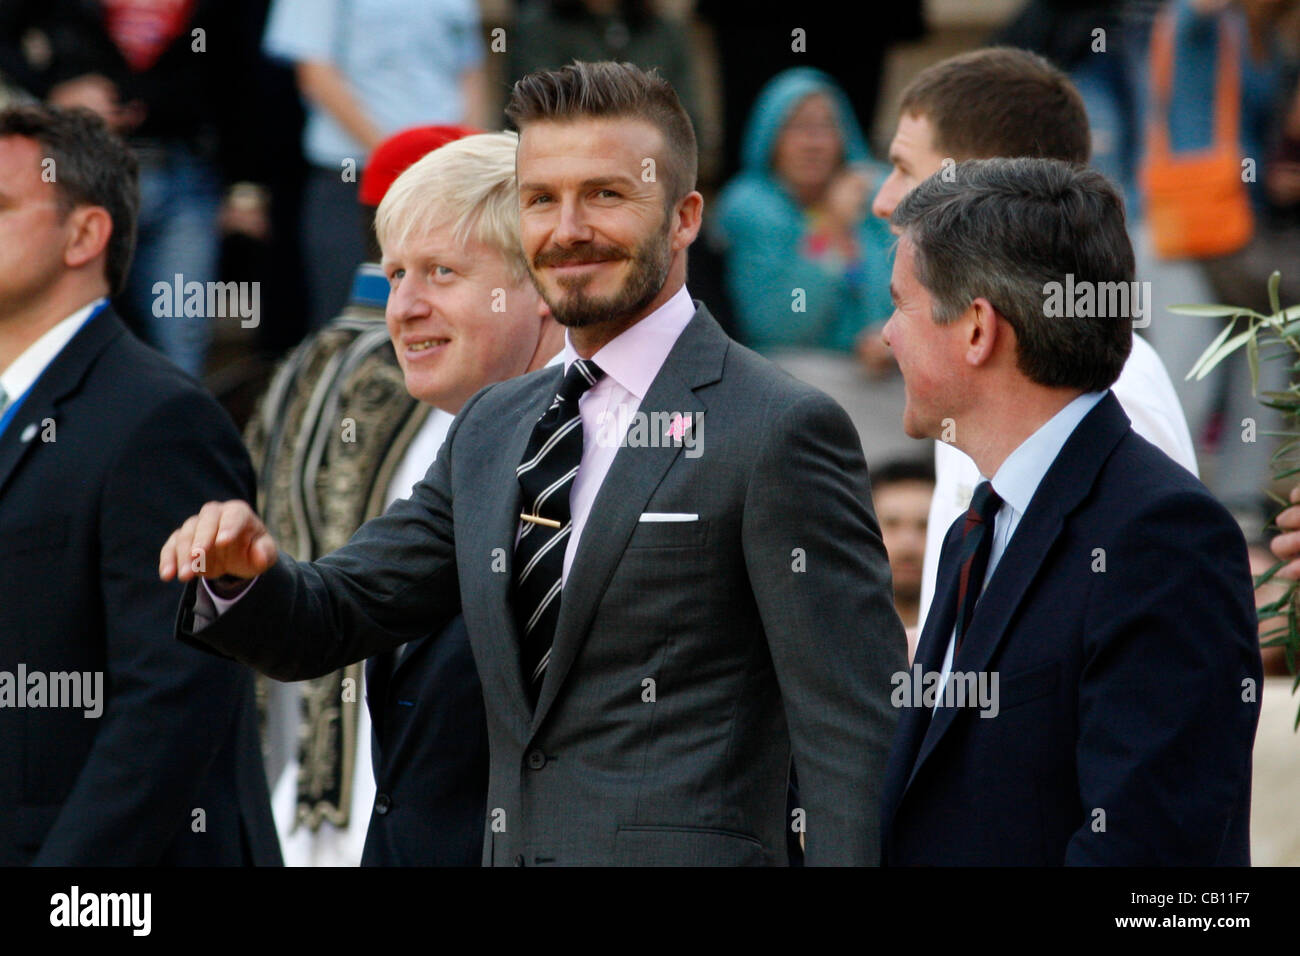 April 17, 2012 Athens Greece. British soccer star DAVID BECKHAM attends the Olympic Flame handover ceremony at the - Stock Image